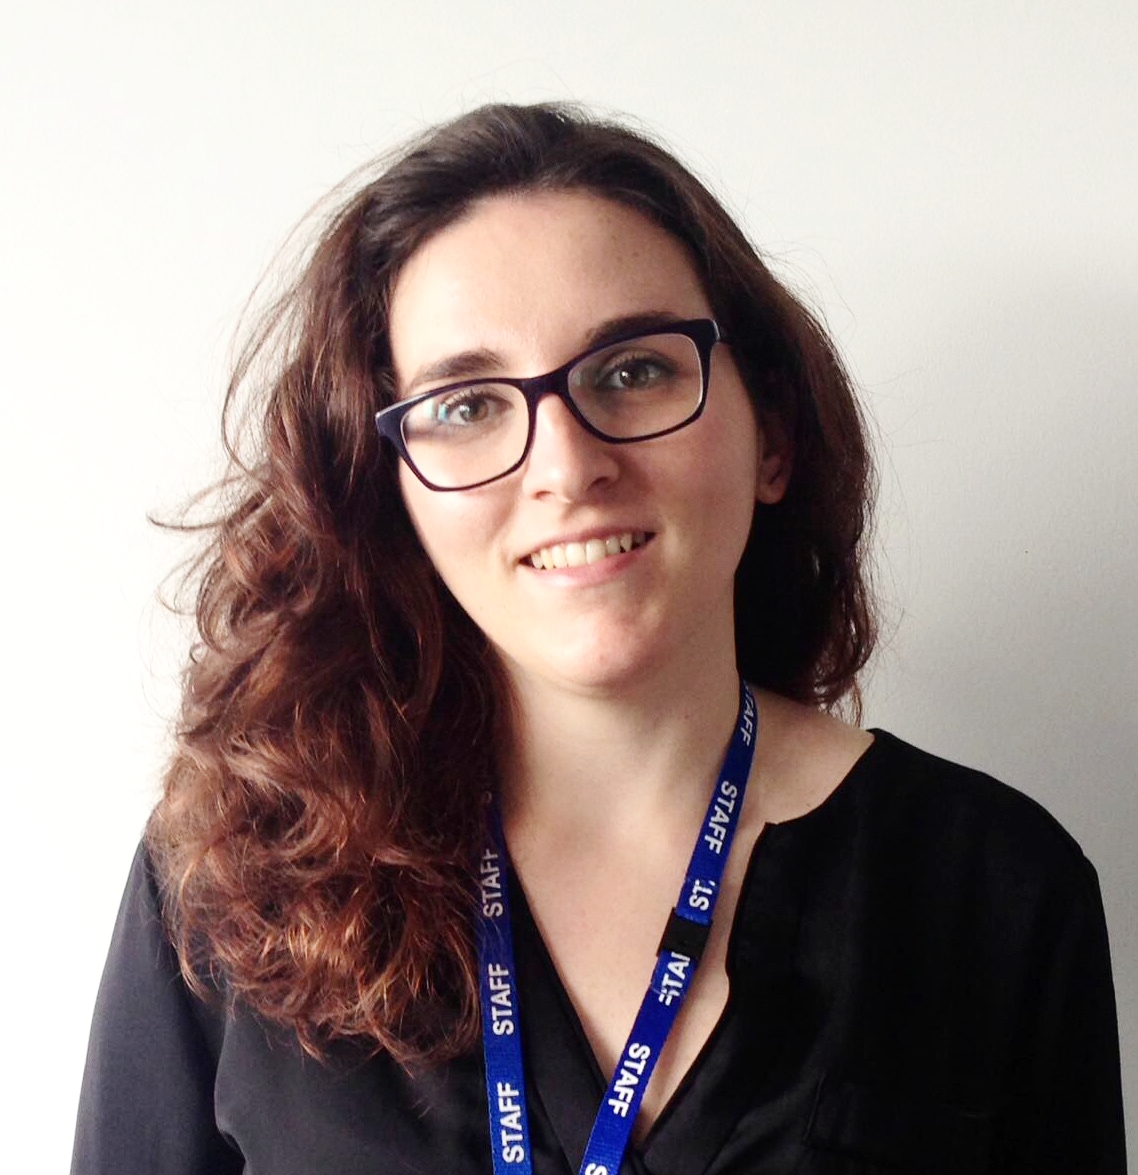 Giorgia Raci, R&D Team Leader  Giorgia's background before joining Mimica was in food quality control labs so she takes a very thorough approach to developing formulations that accurately mimic food.